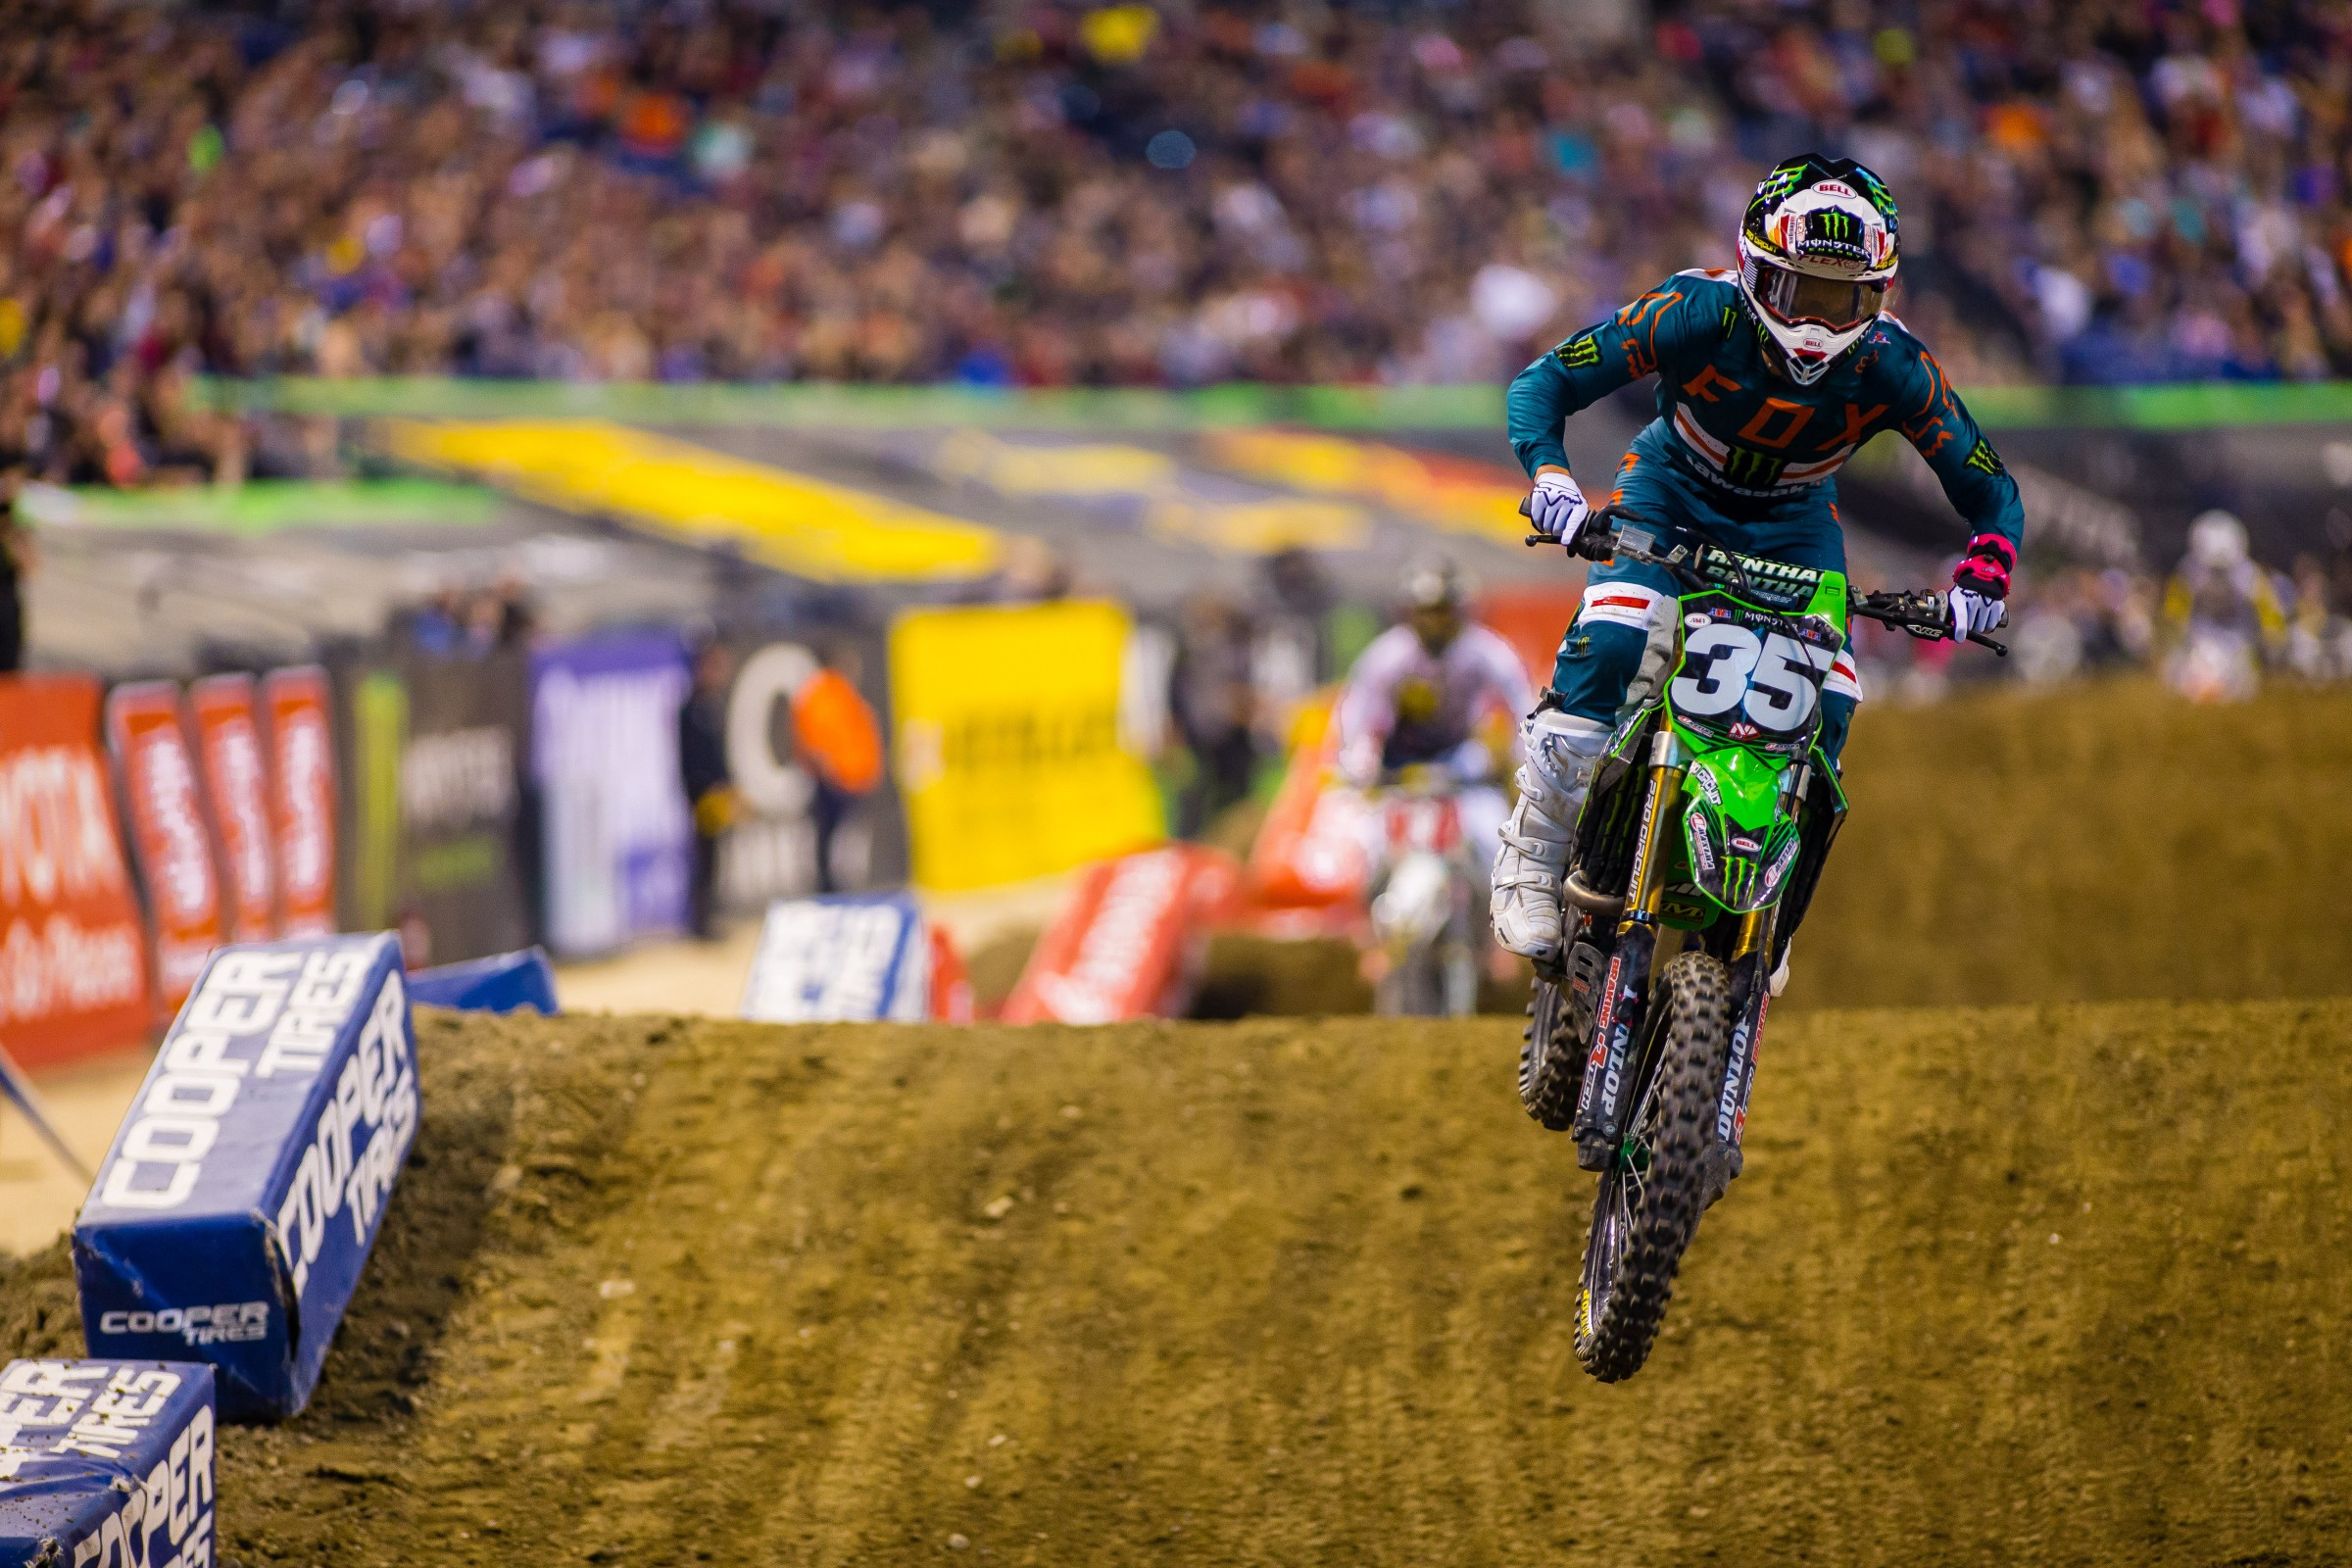 With just two rounds left, Forkner needs a good finish in Minneapolis to make up points on Osborne.